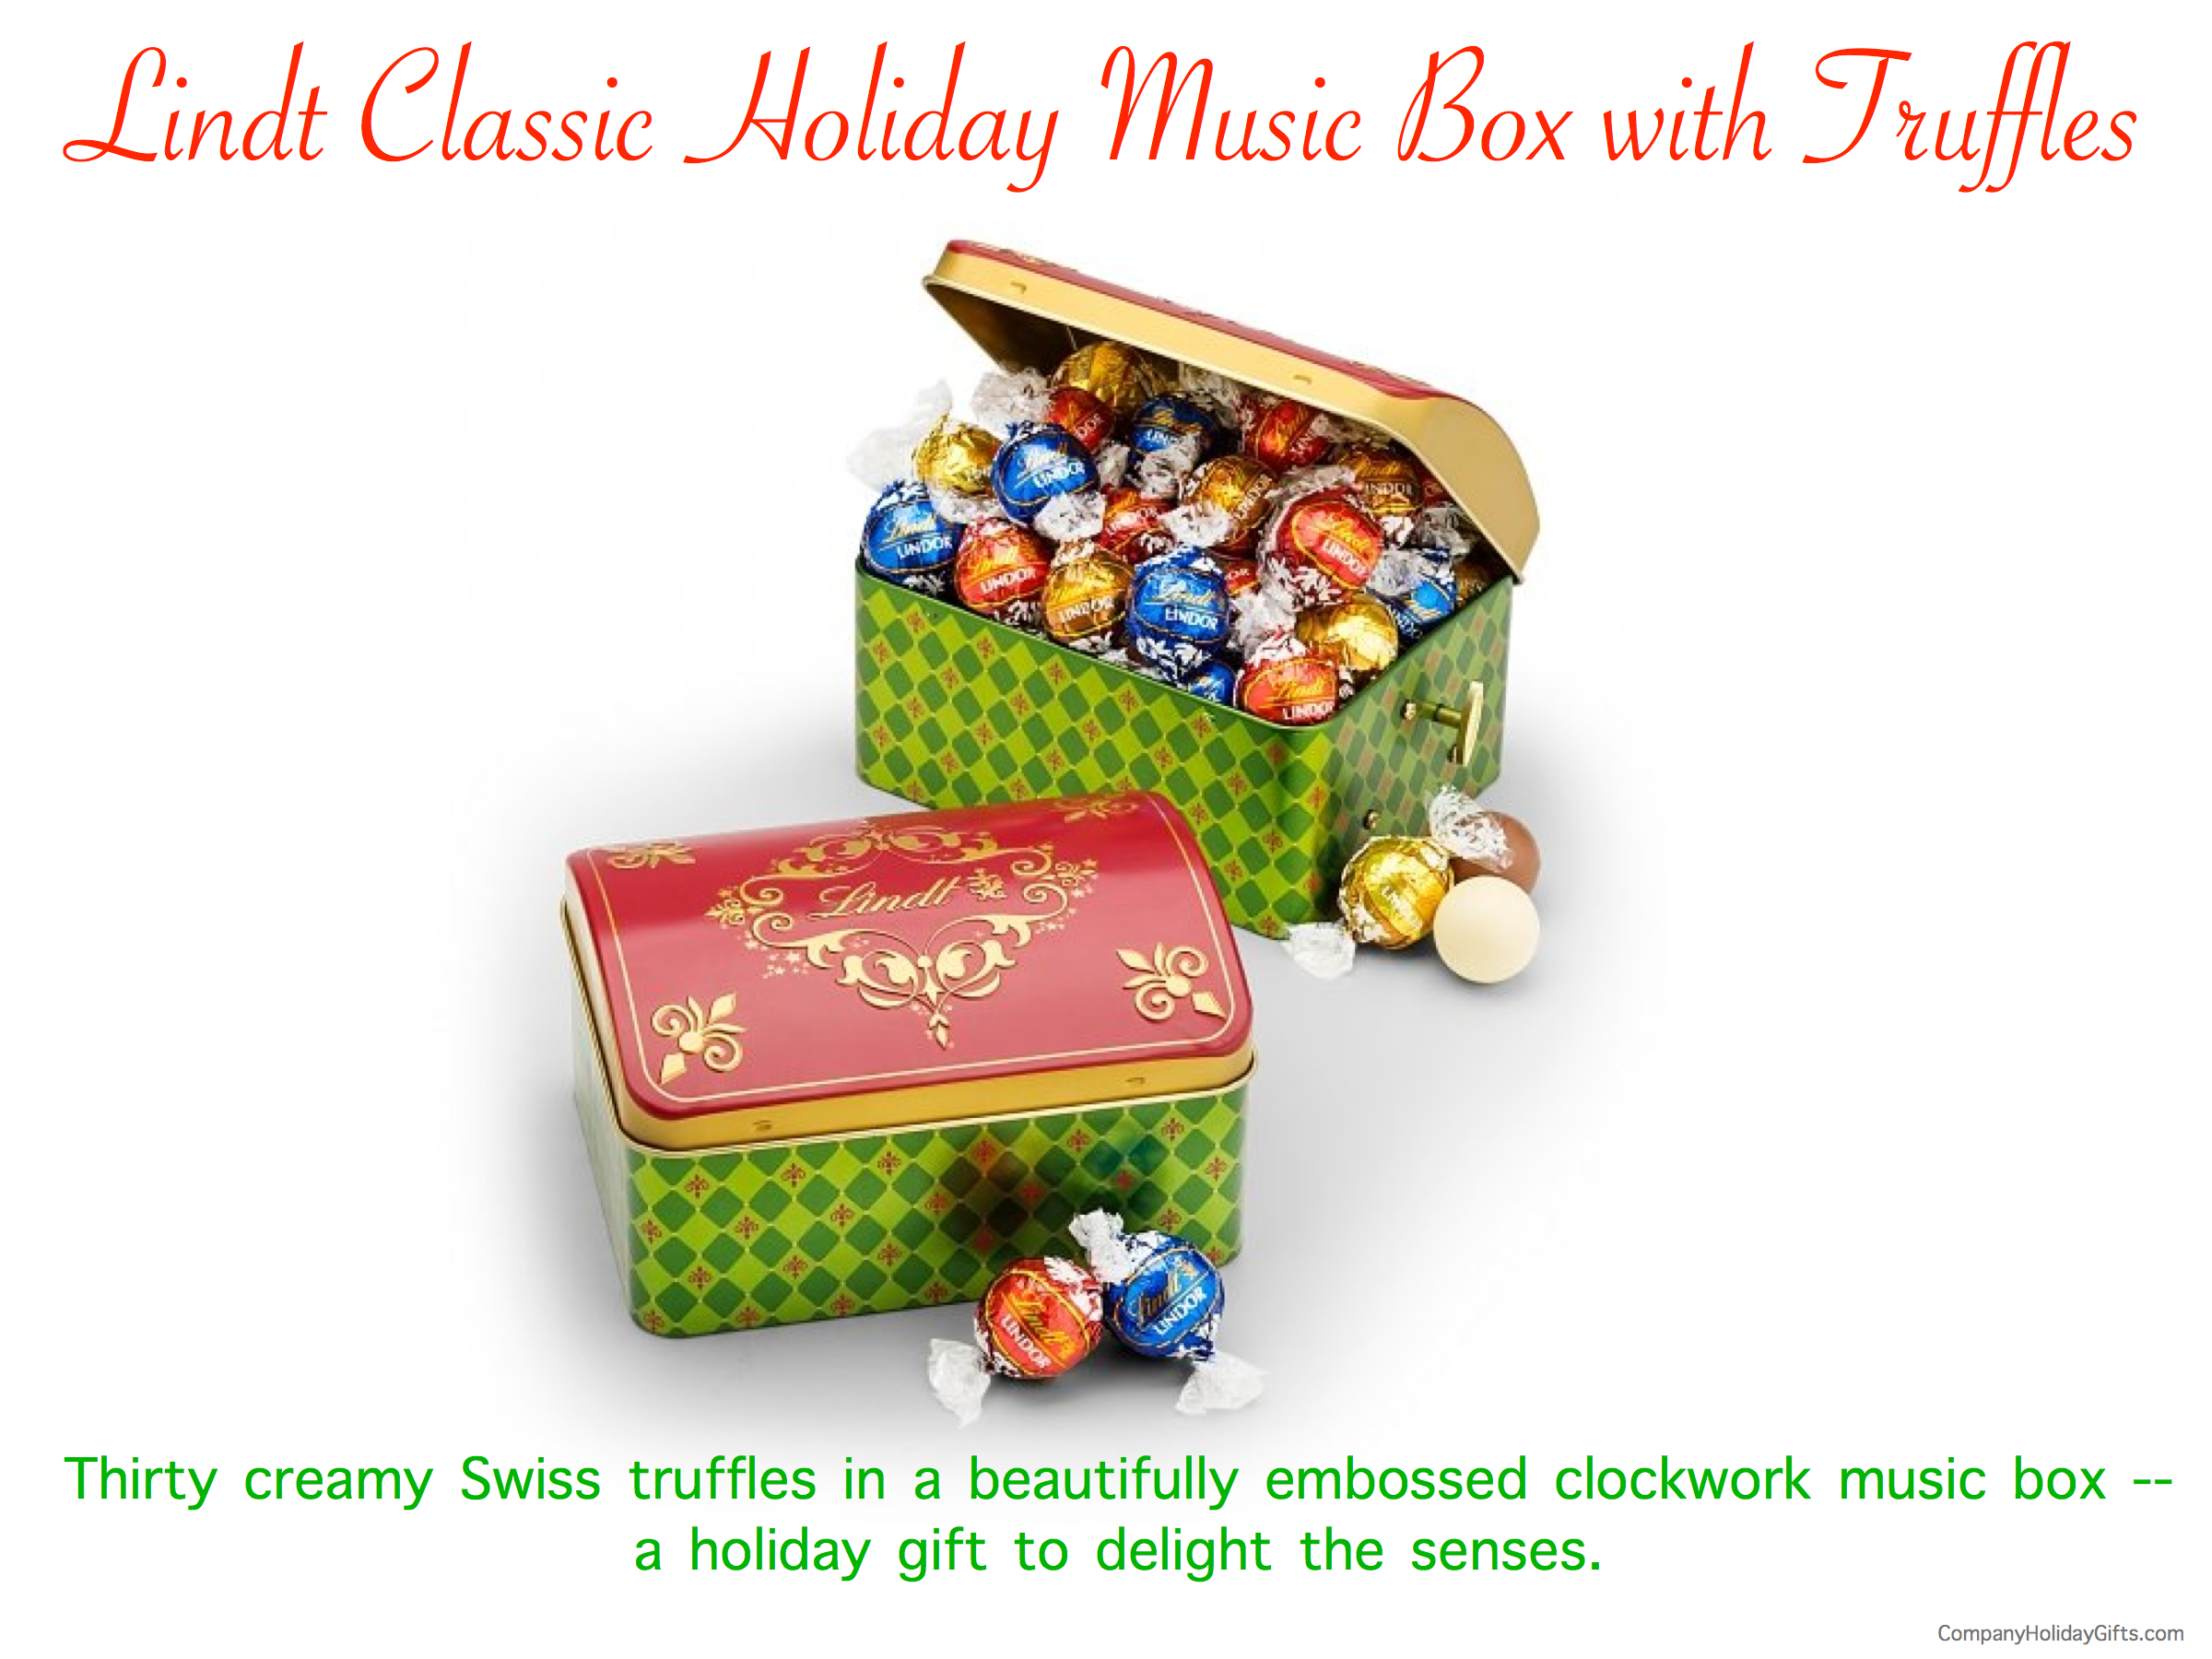 Lindt Classic Holiday Music Box with Truffles, 20 Best Company Holiday Gift Ideas Under $100.00